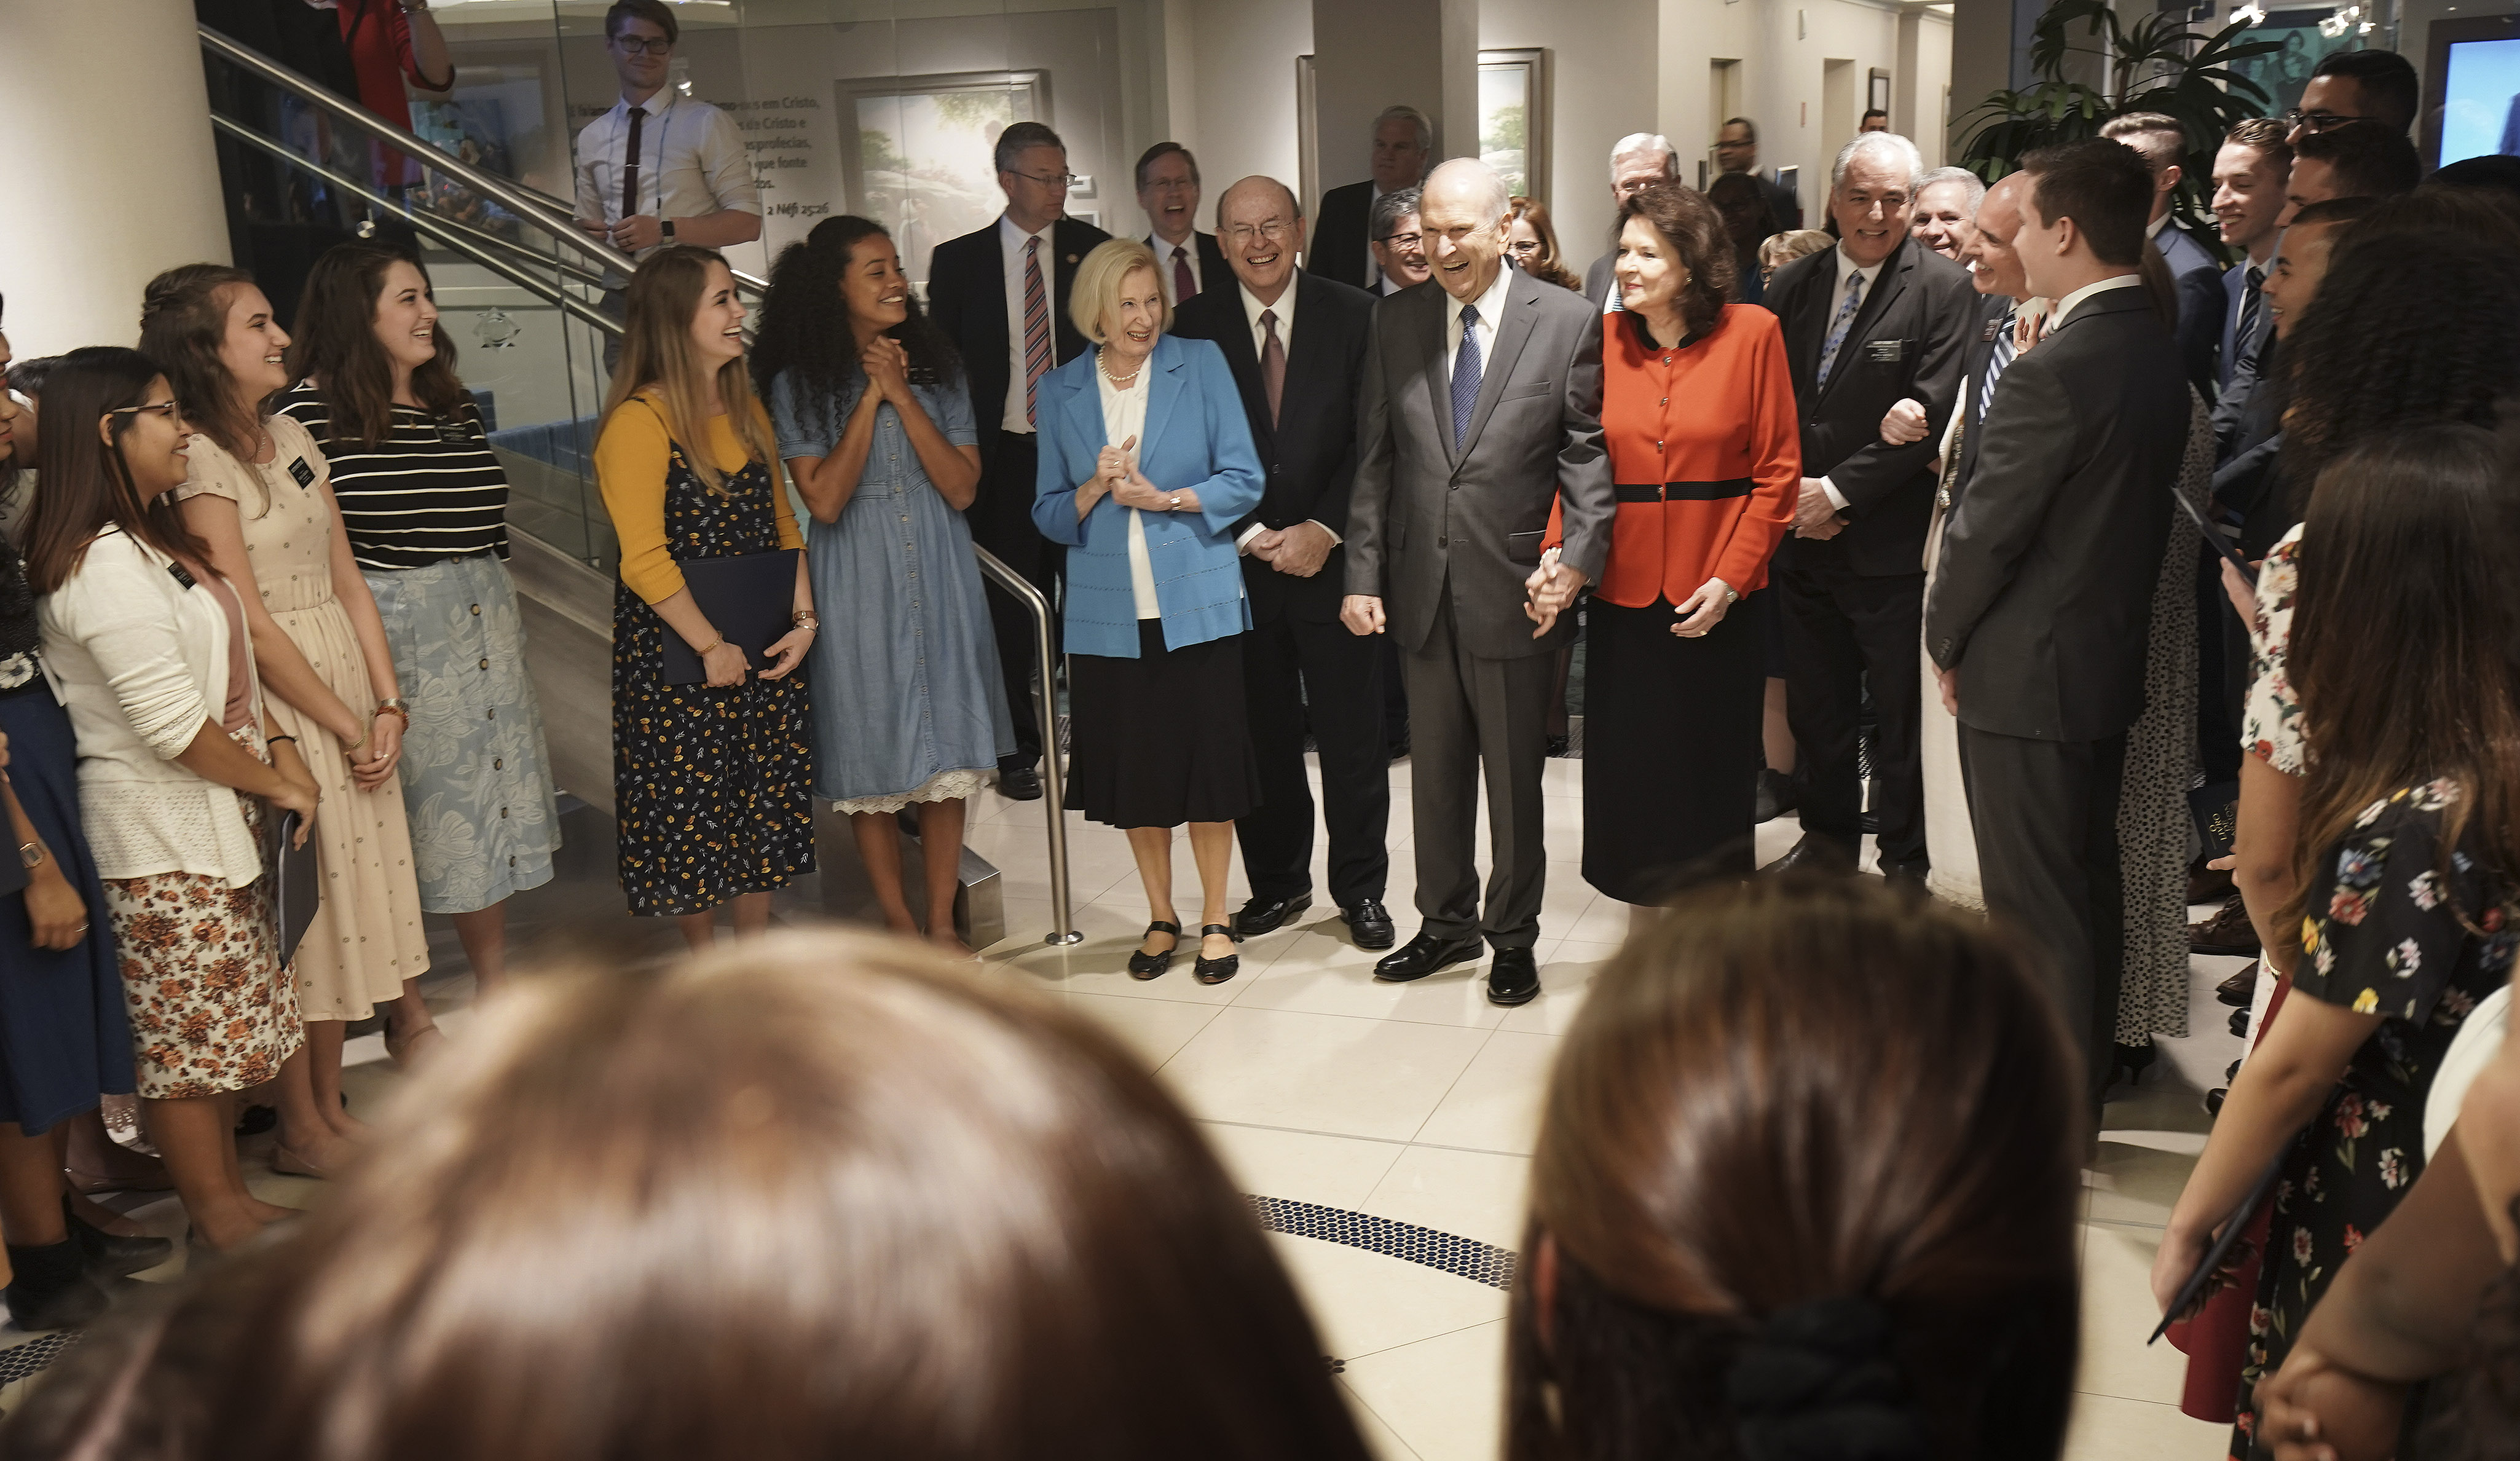 President Russell M. Nelson of The Church of Jesus Christ of Latter-day Saints and his wife, Sister Wendy Nelson, and Elder Quentin L. Cook of the Quorum of the Twelve Apostles and his wife, Sister Mary Cook, are sung to by missionaries in Sao Paulo, Brazil, on Aug. 31, 2019.